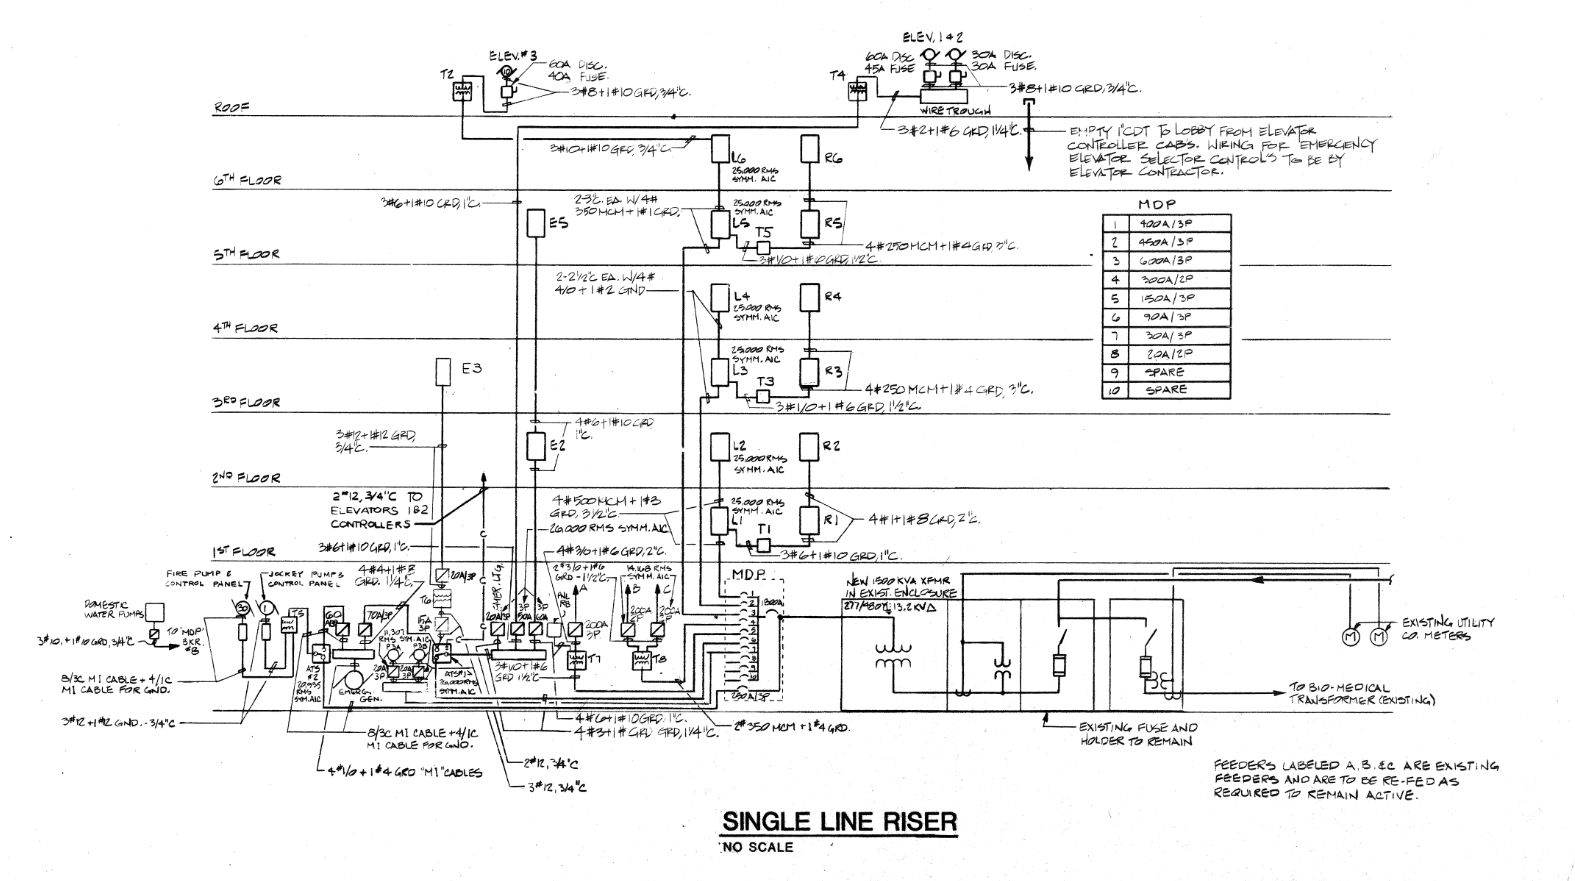 1994 Gmc Sierra Wiring Diagram from sites.google.com